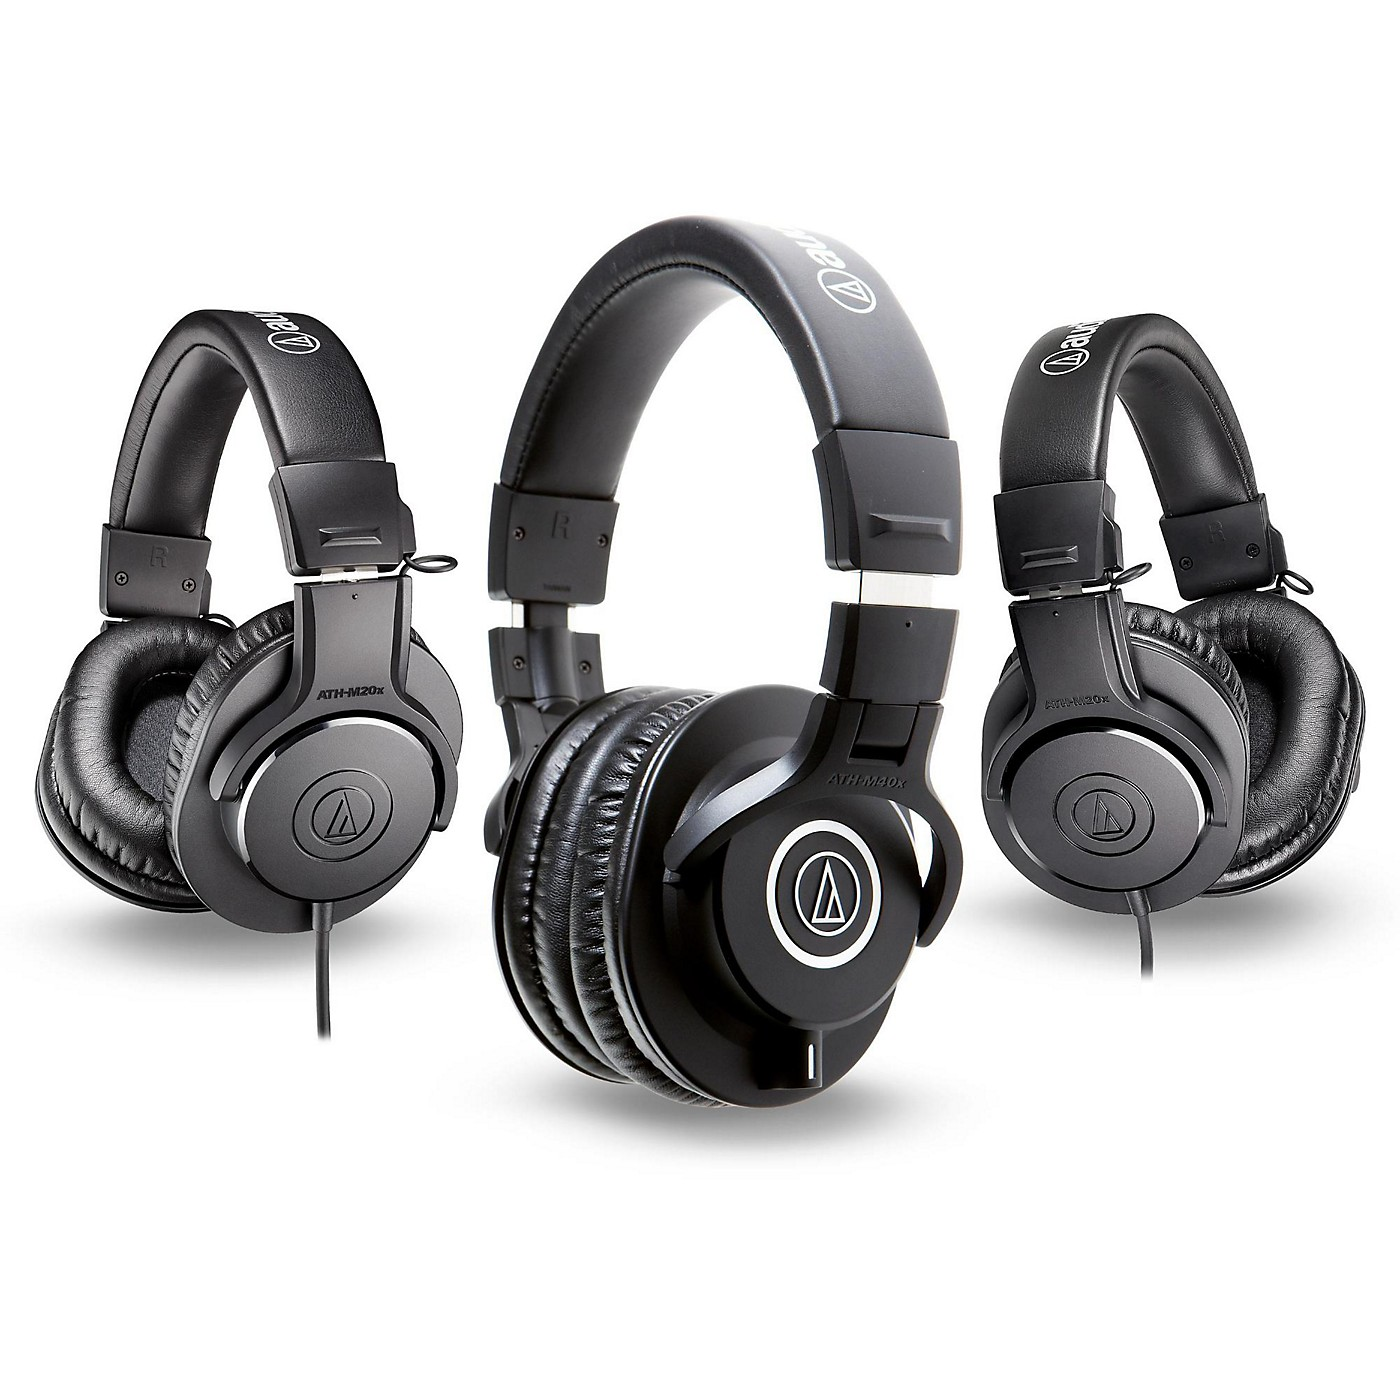 Audio-Technica ATH-M40x Headphones with 2 ATH-M20x Headphones thumbnail